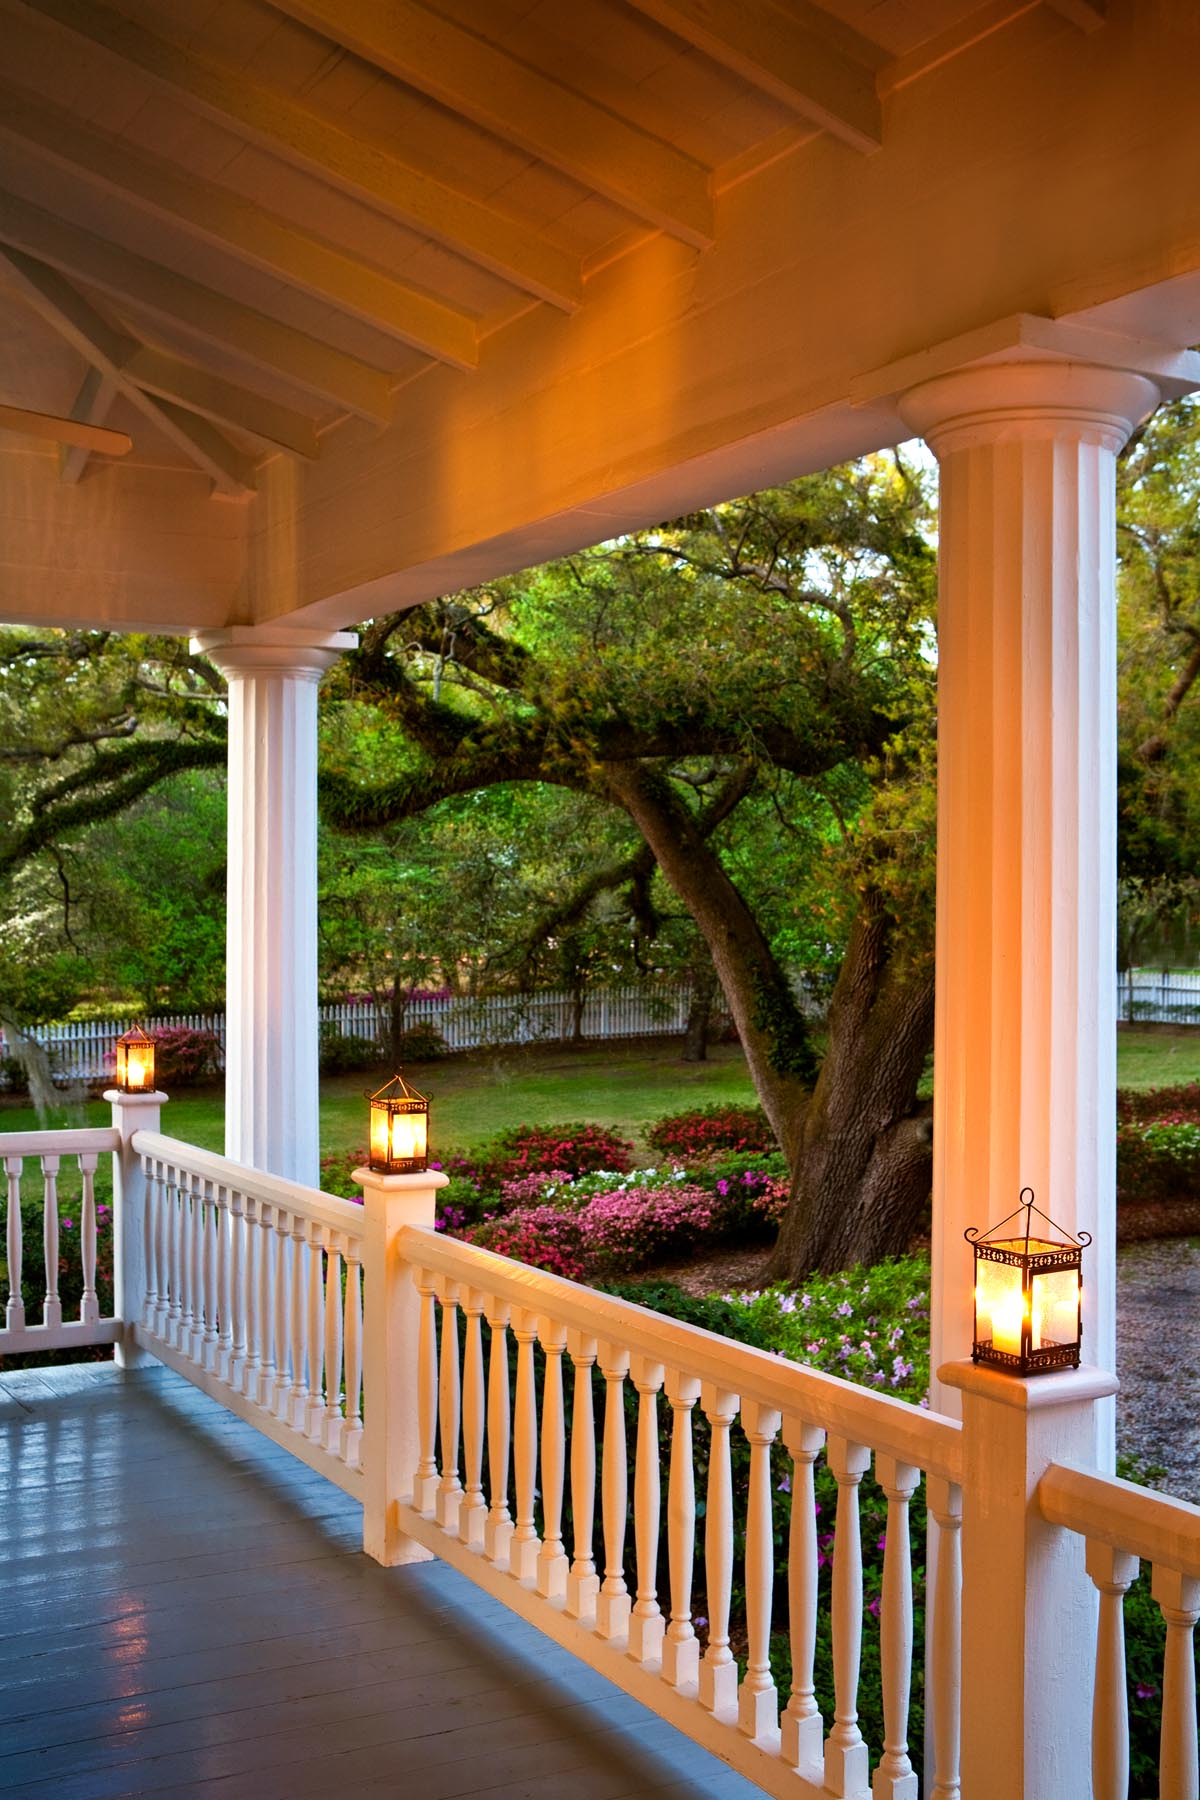 A sunset photo of the Bloomsbury porch highlights the beauty of the rain porch.